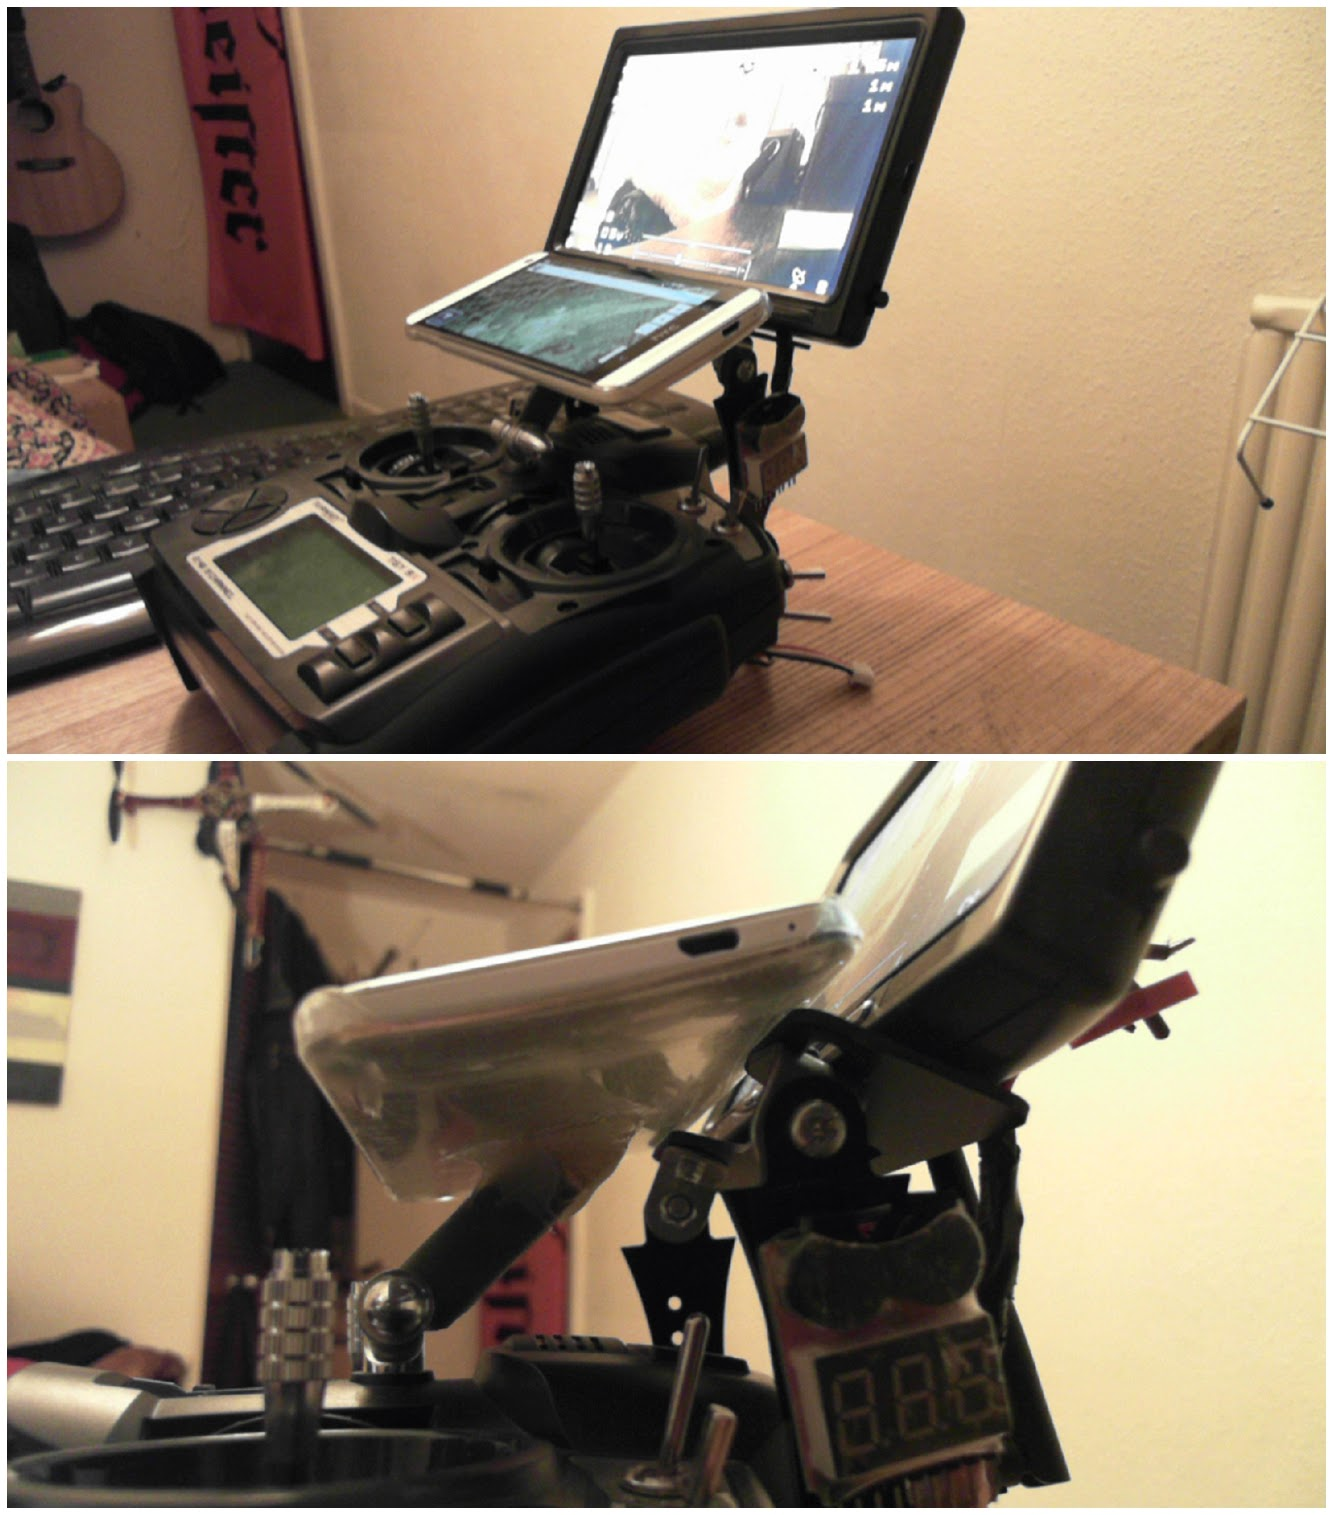 ghetto fpv monitor on steroids dalybulge